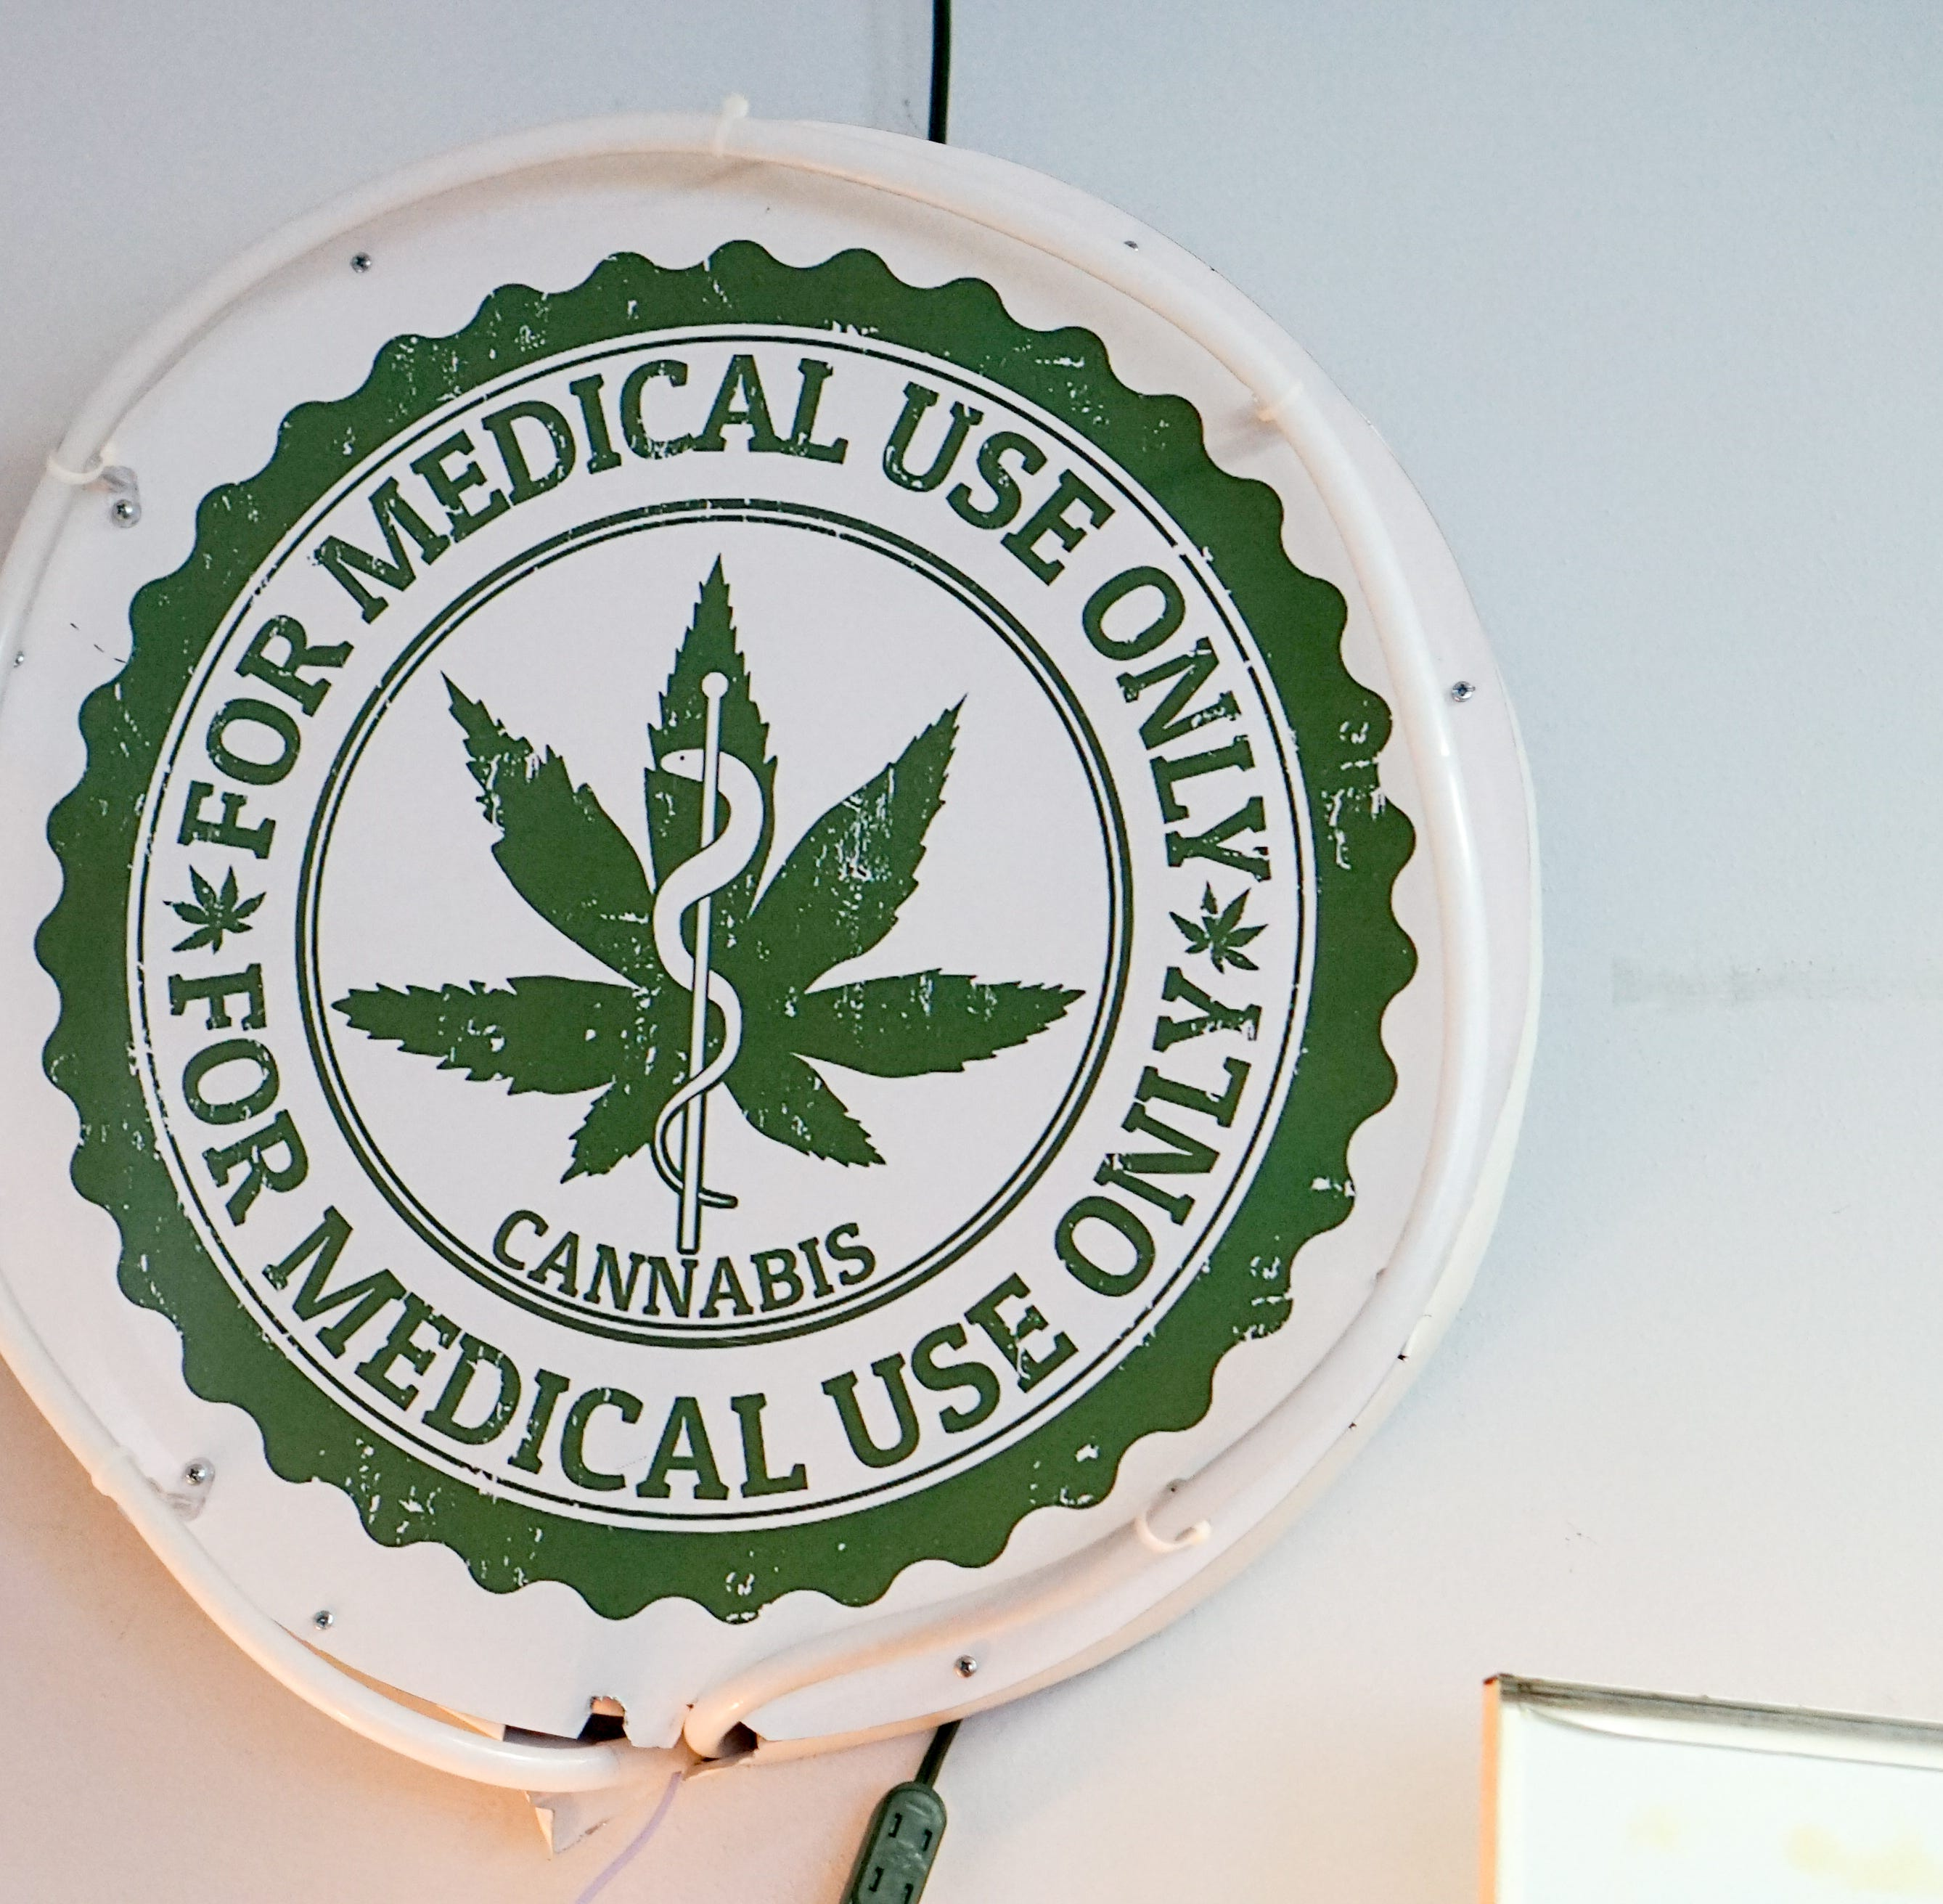 New legislation seeks to expand medical marijuana qualifications